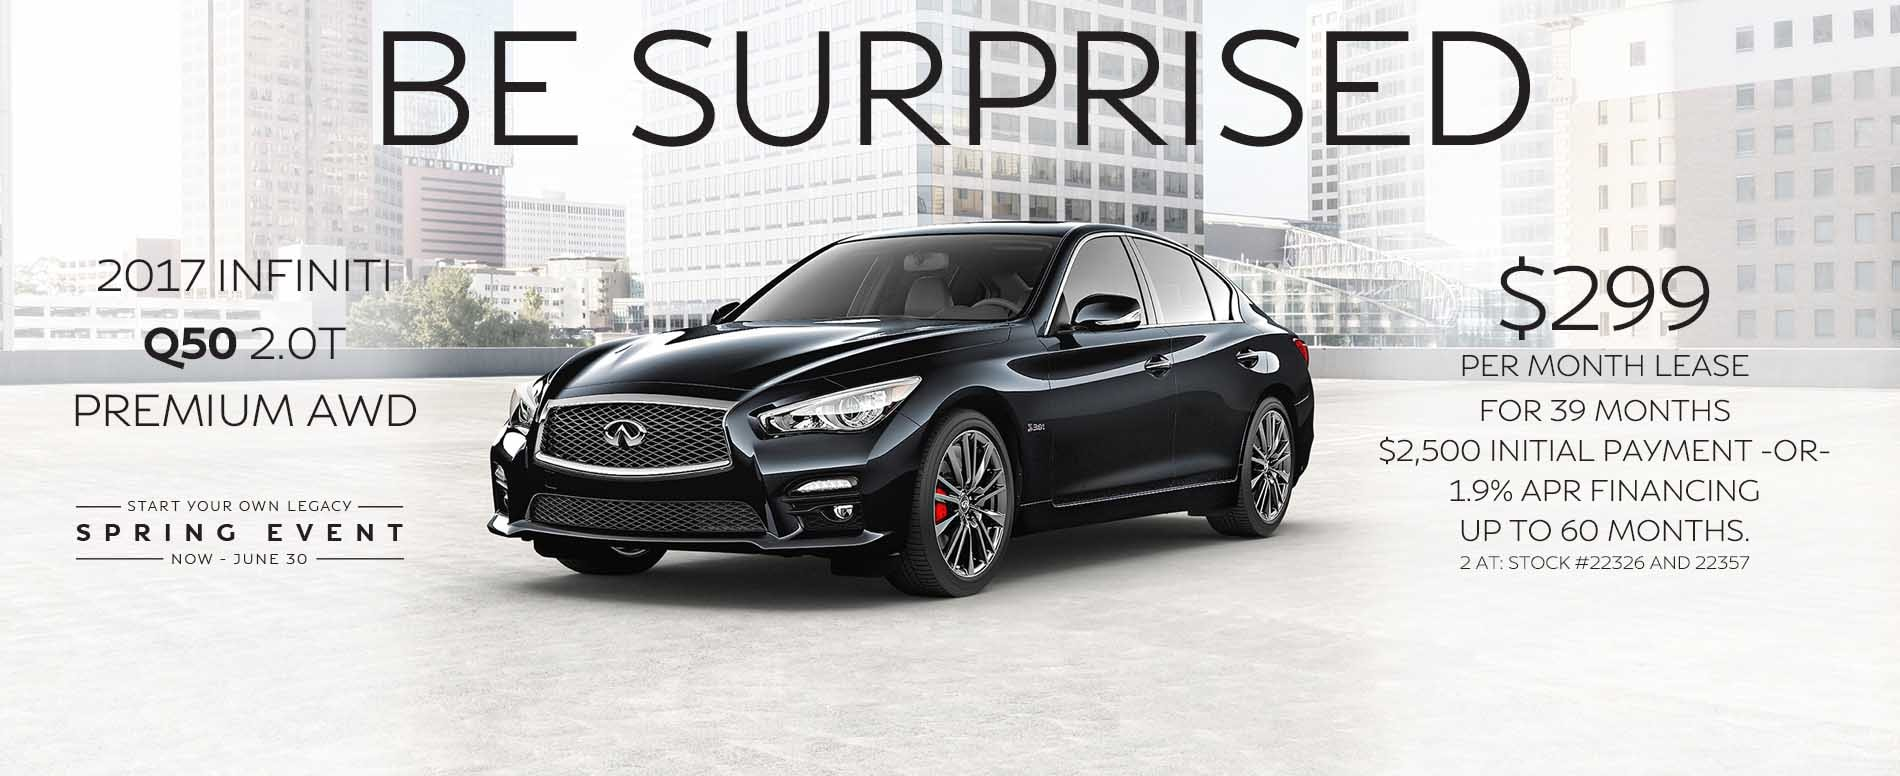 BE surprised. Lease a 2017 INFINITI Q50 for $299 per month with $2,500 due at signing or 1.9% APR financing up to 60 months.